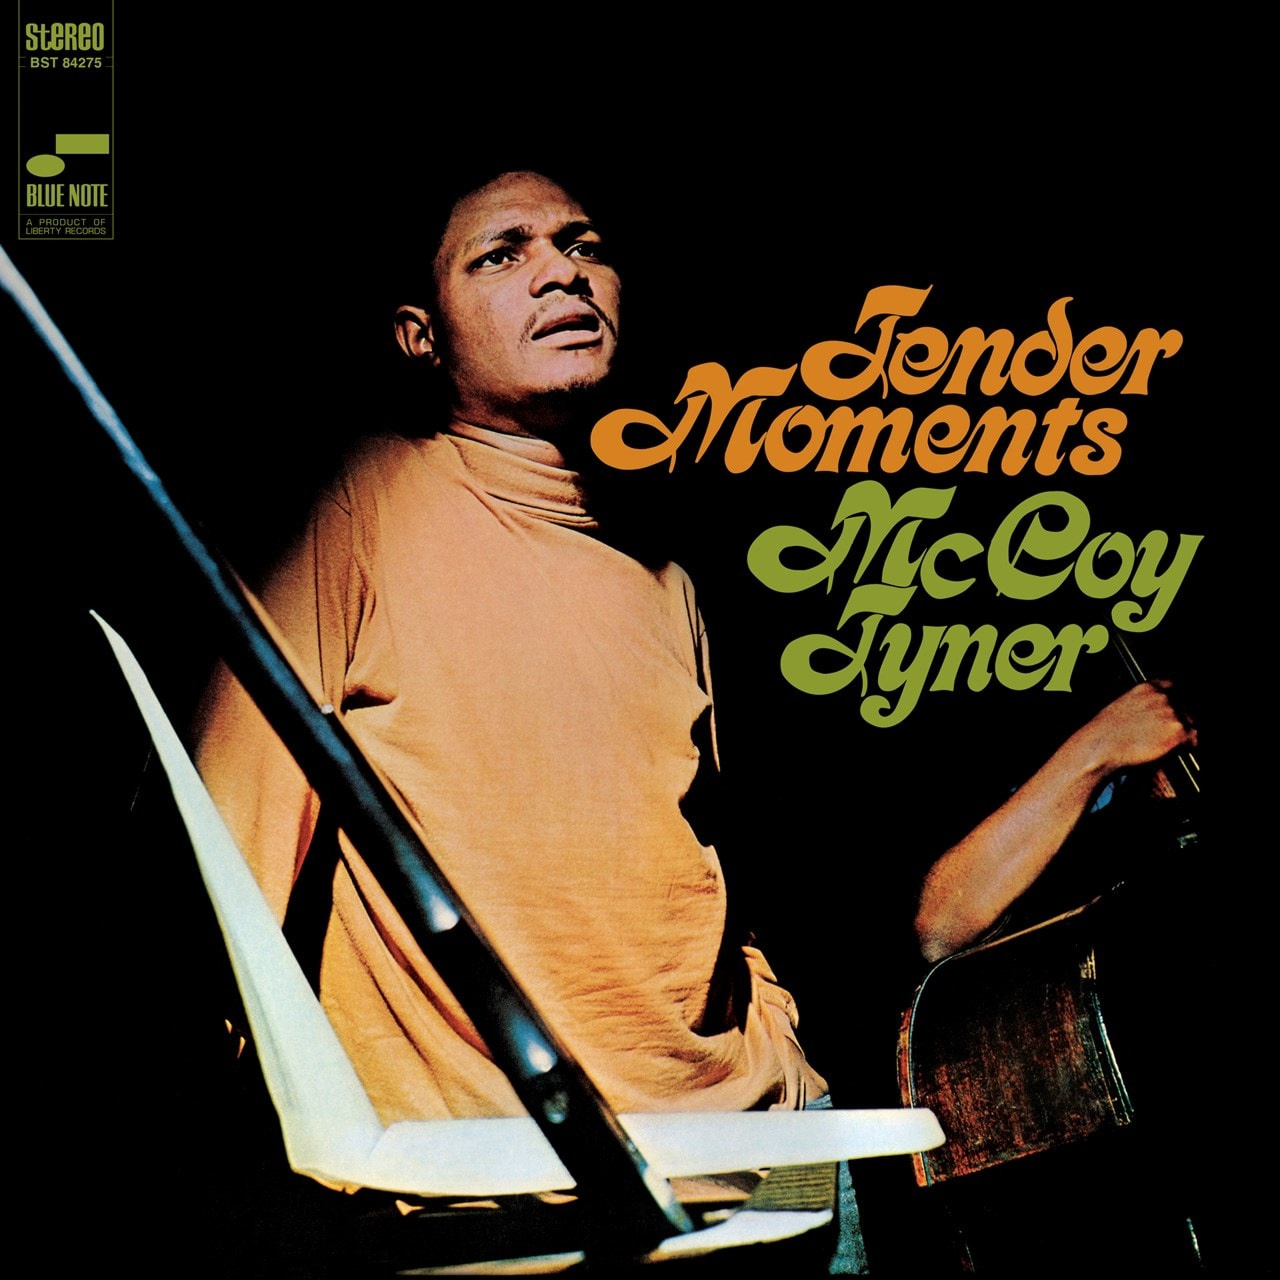 McCoy Tyner - Tender Moments (TONE POET EDITION)